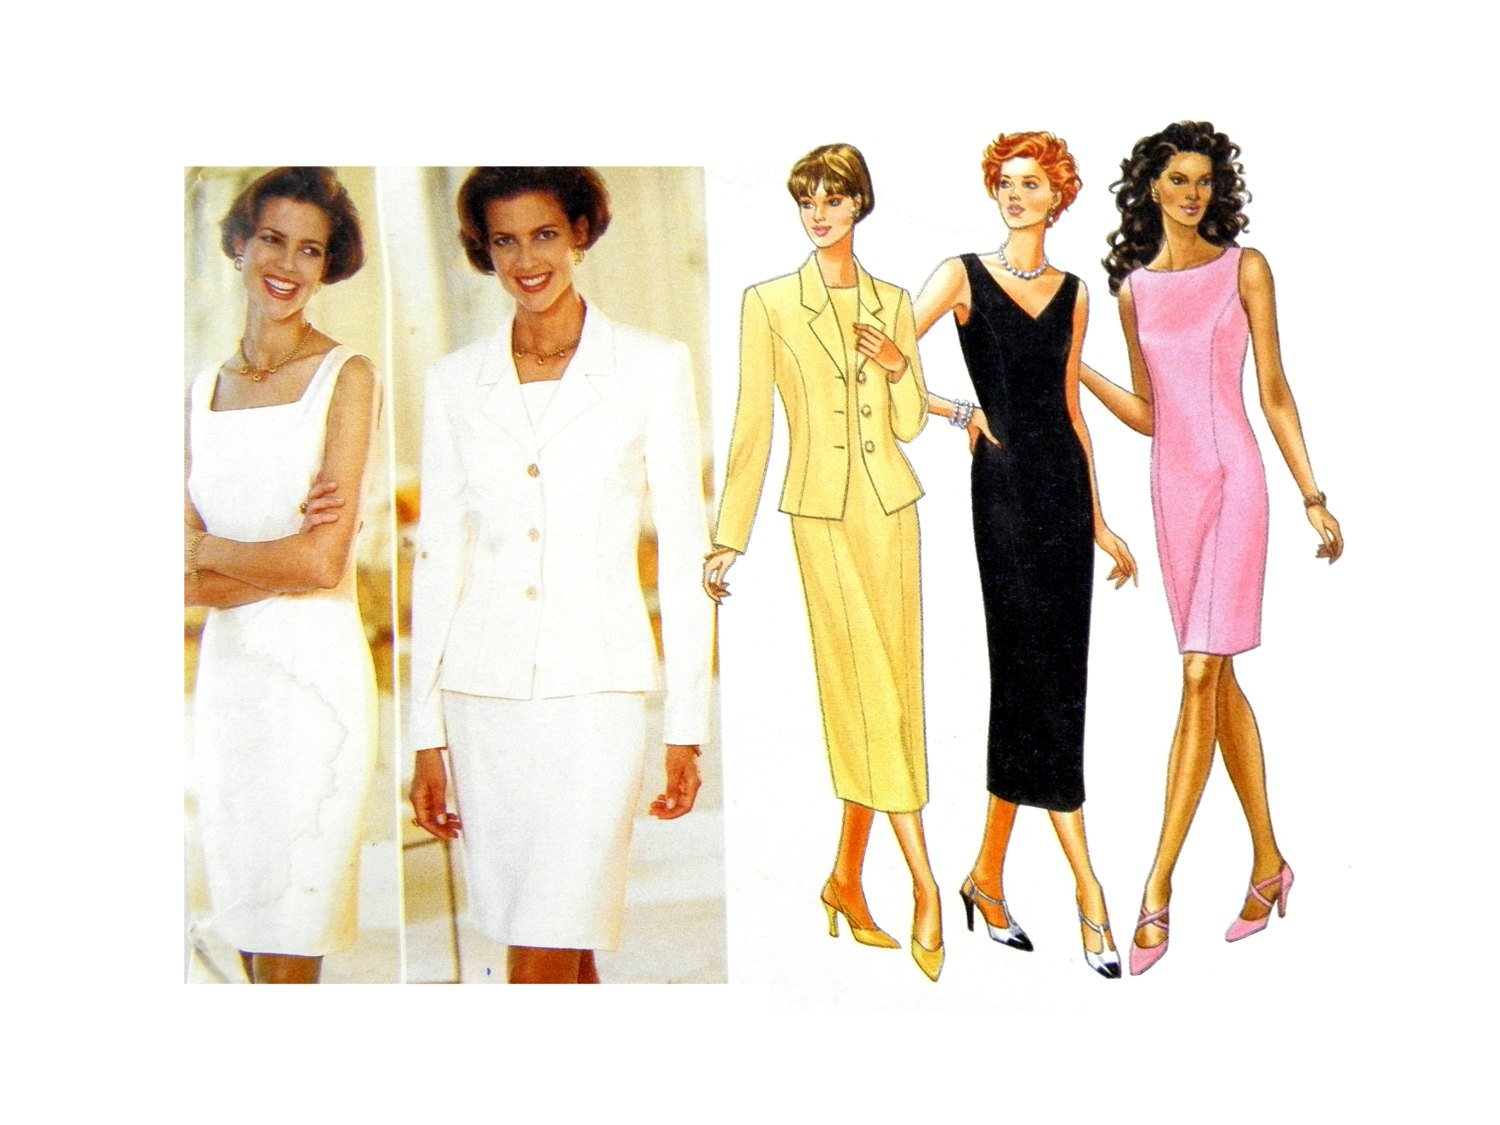 Butterick 4441 Misses' Semi-Fitted, Lined Jacket, Tapered Dress SIZE 18-22